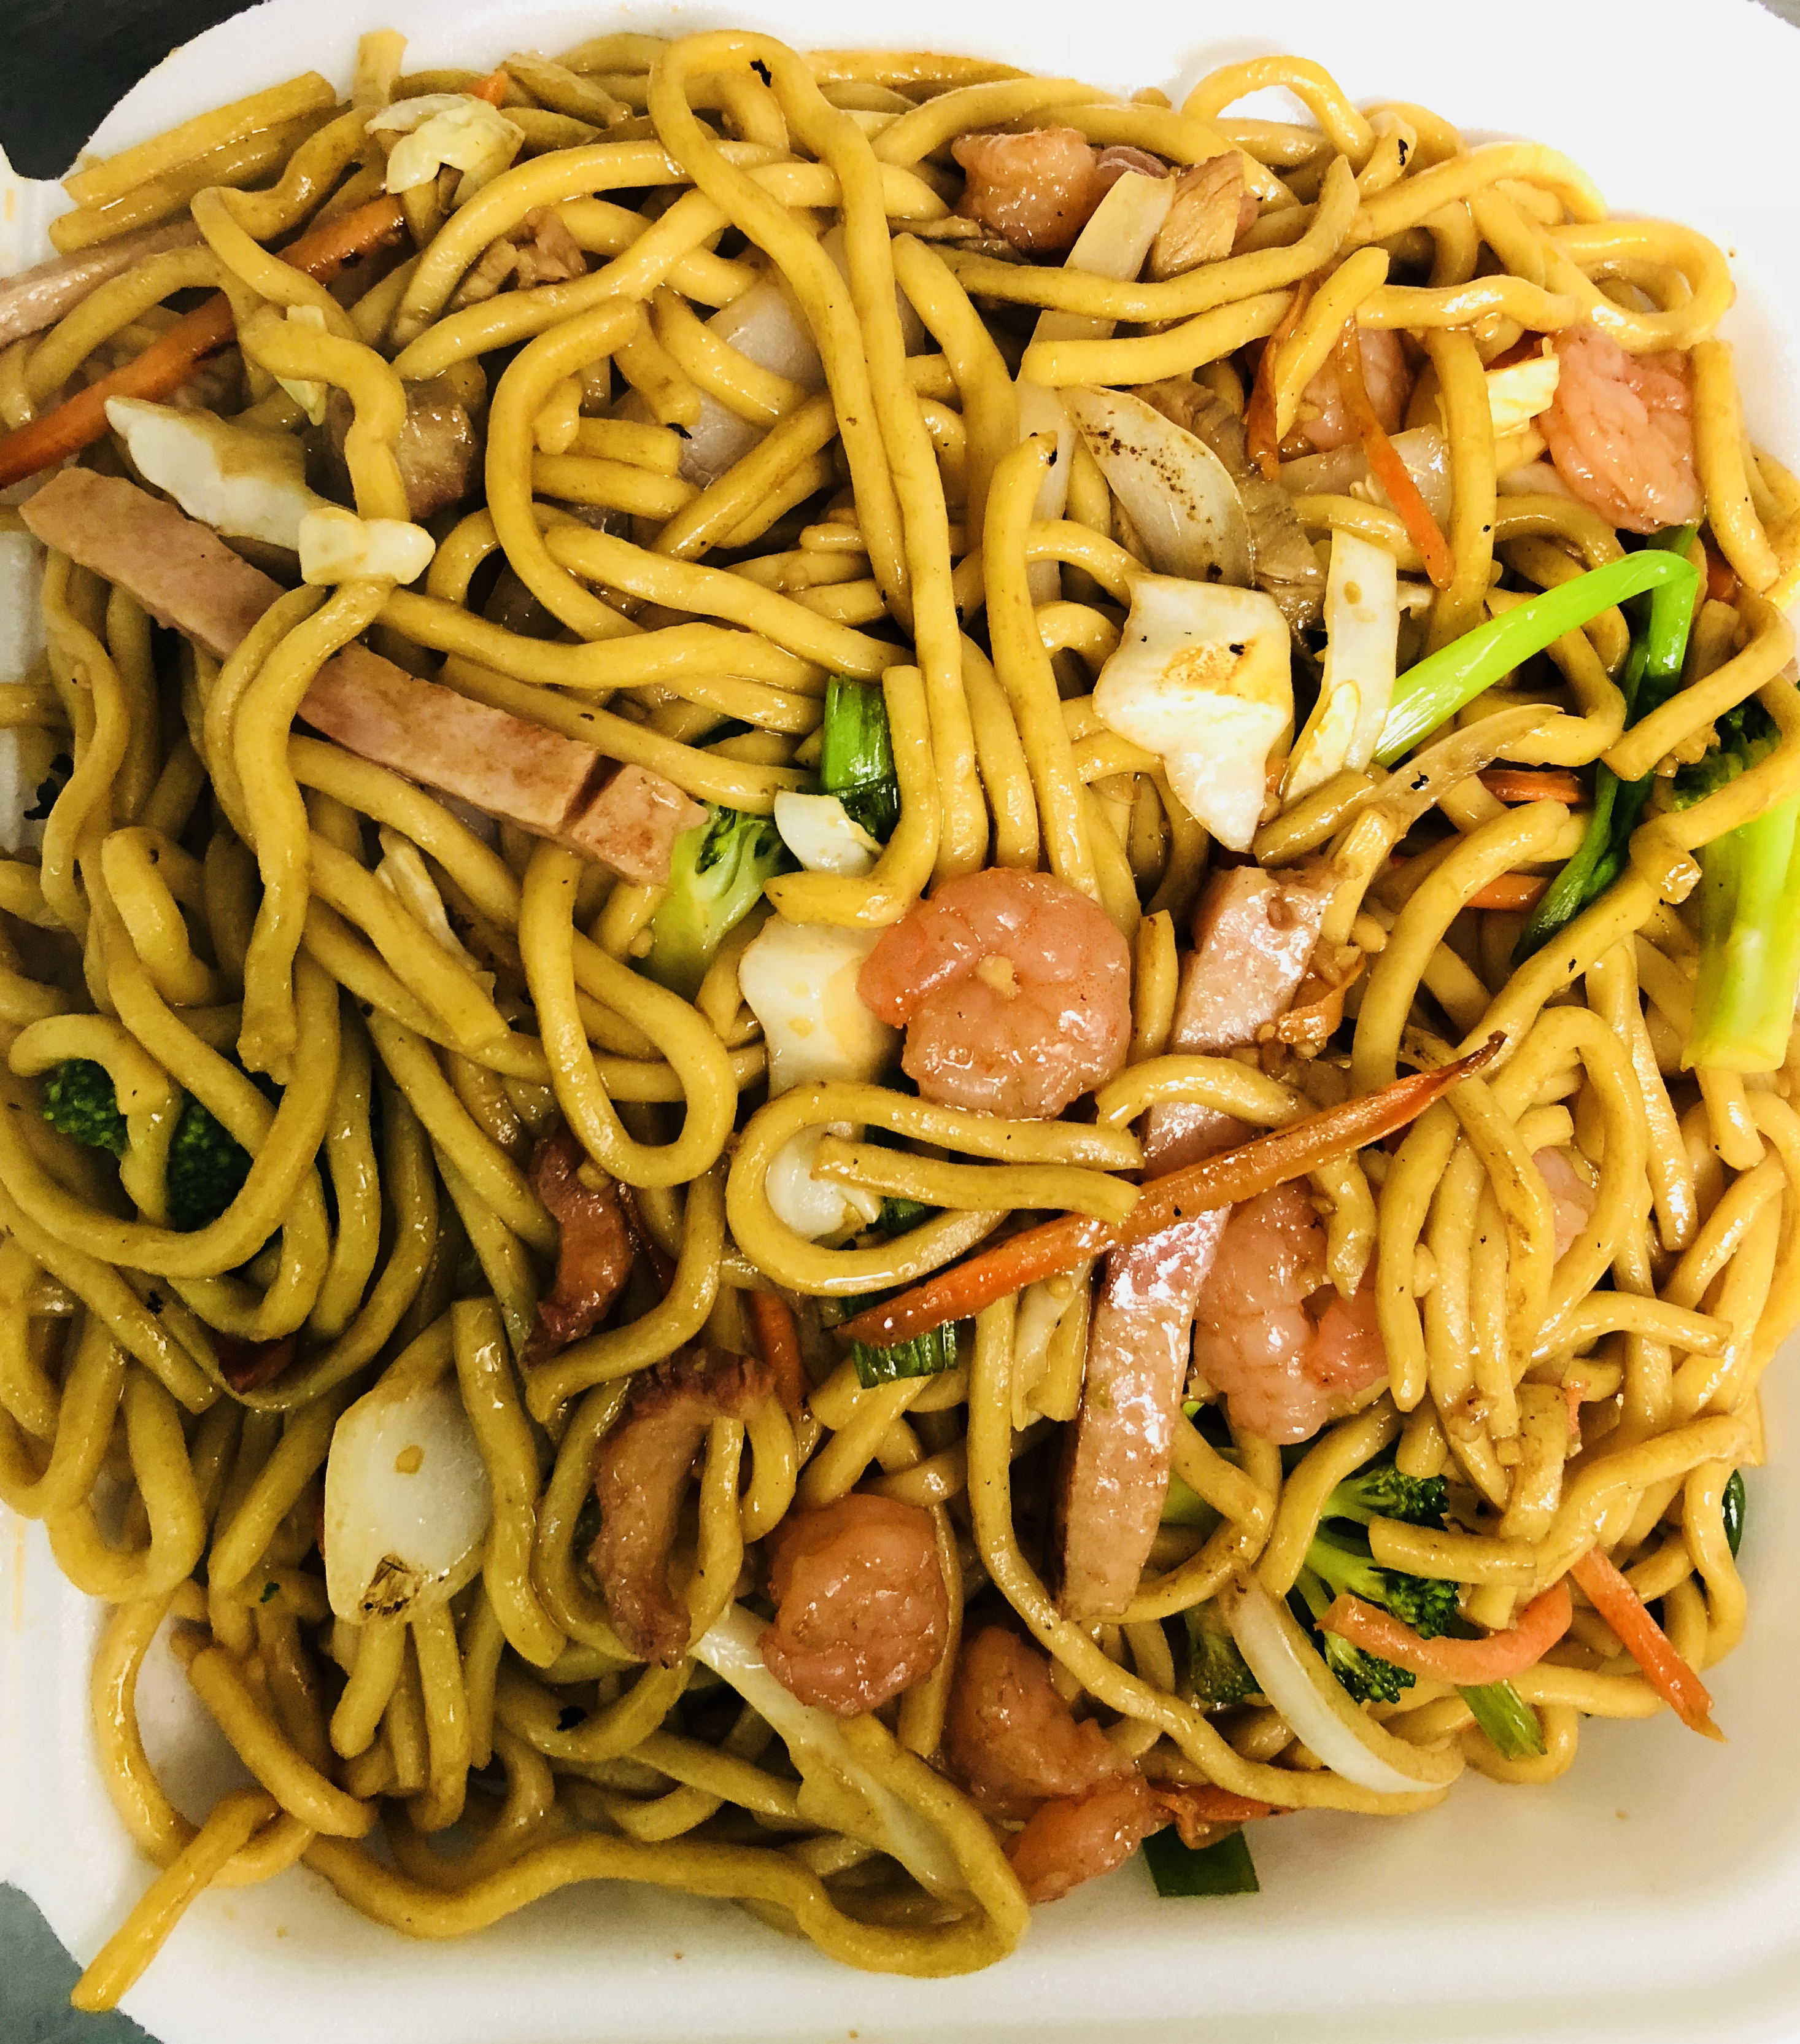 32. House Lo Mein Image